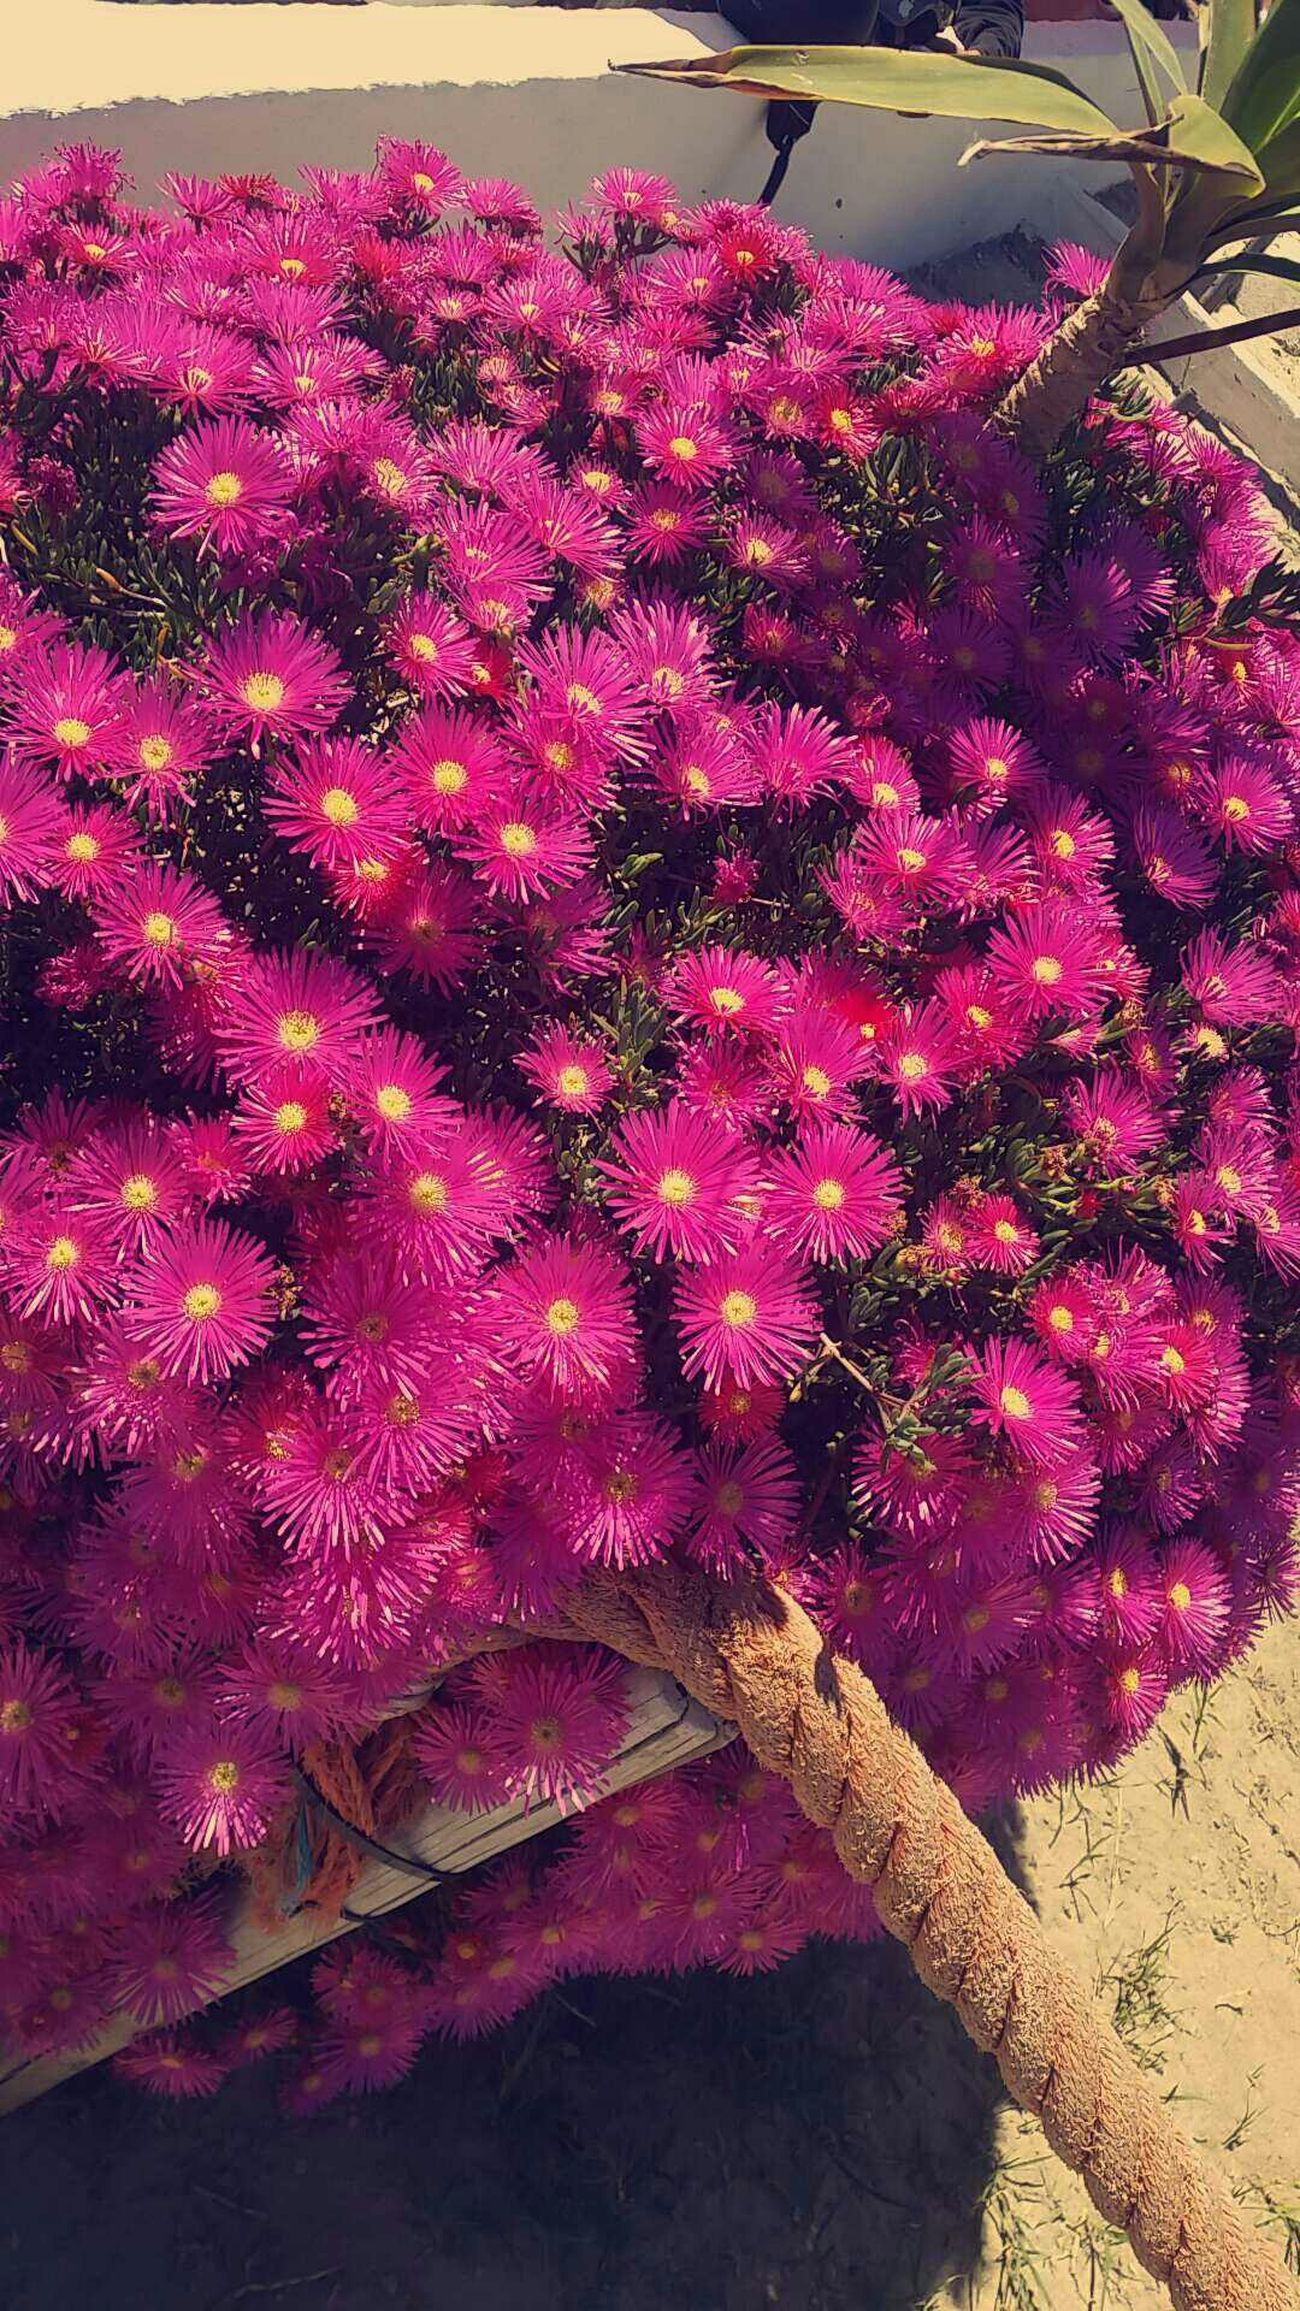 Flowerlovers Flowers_collection Pink Pink Flower Flowers,Plants & Garden Flowers Colors Wellow